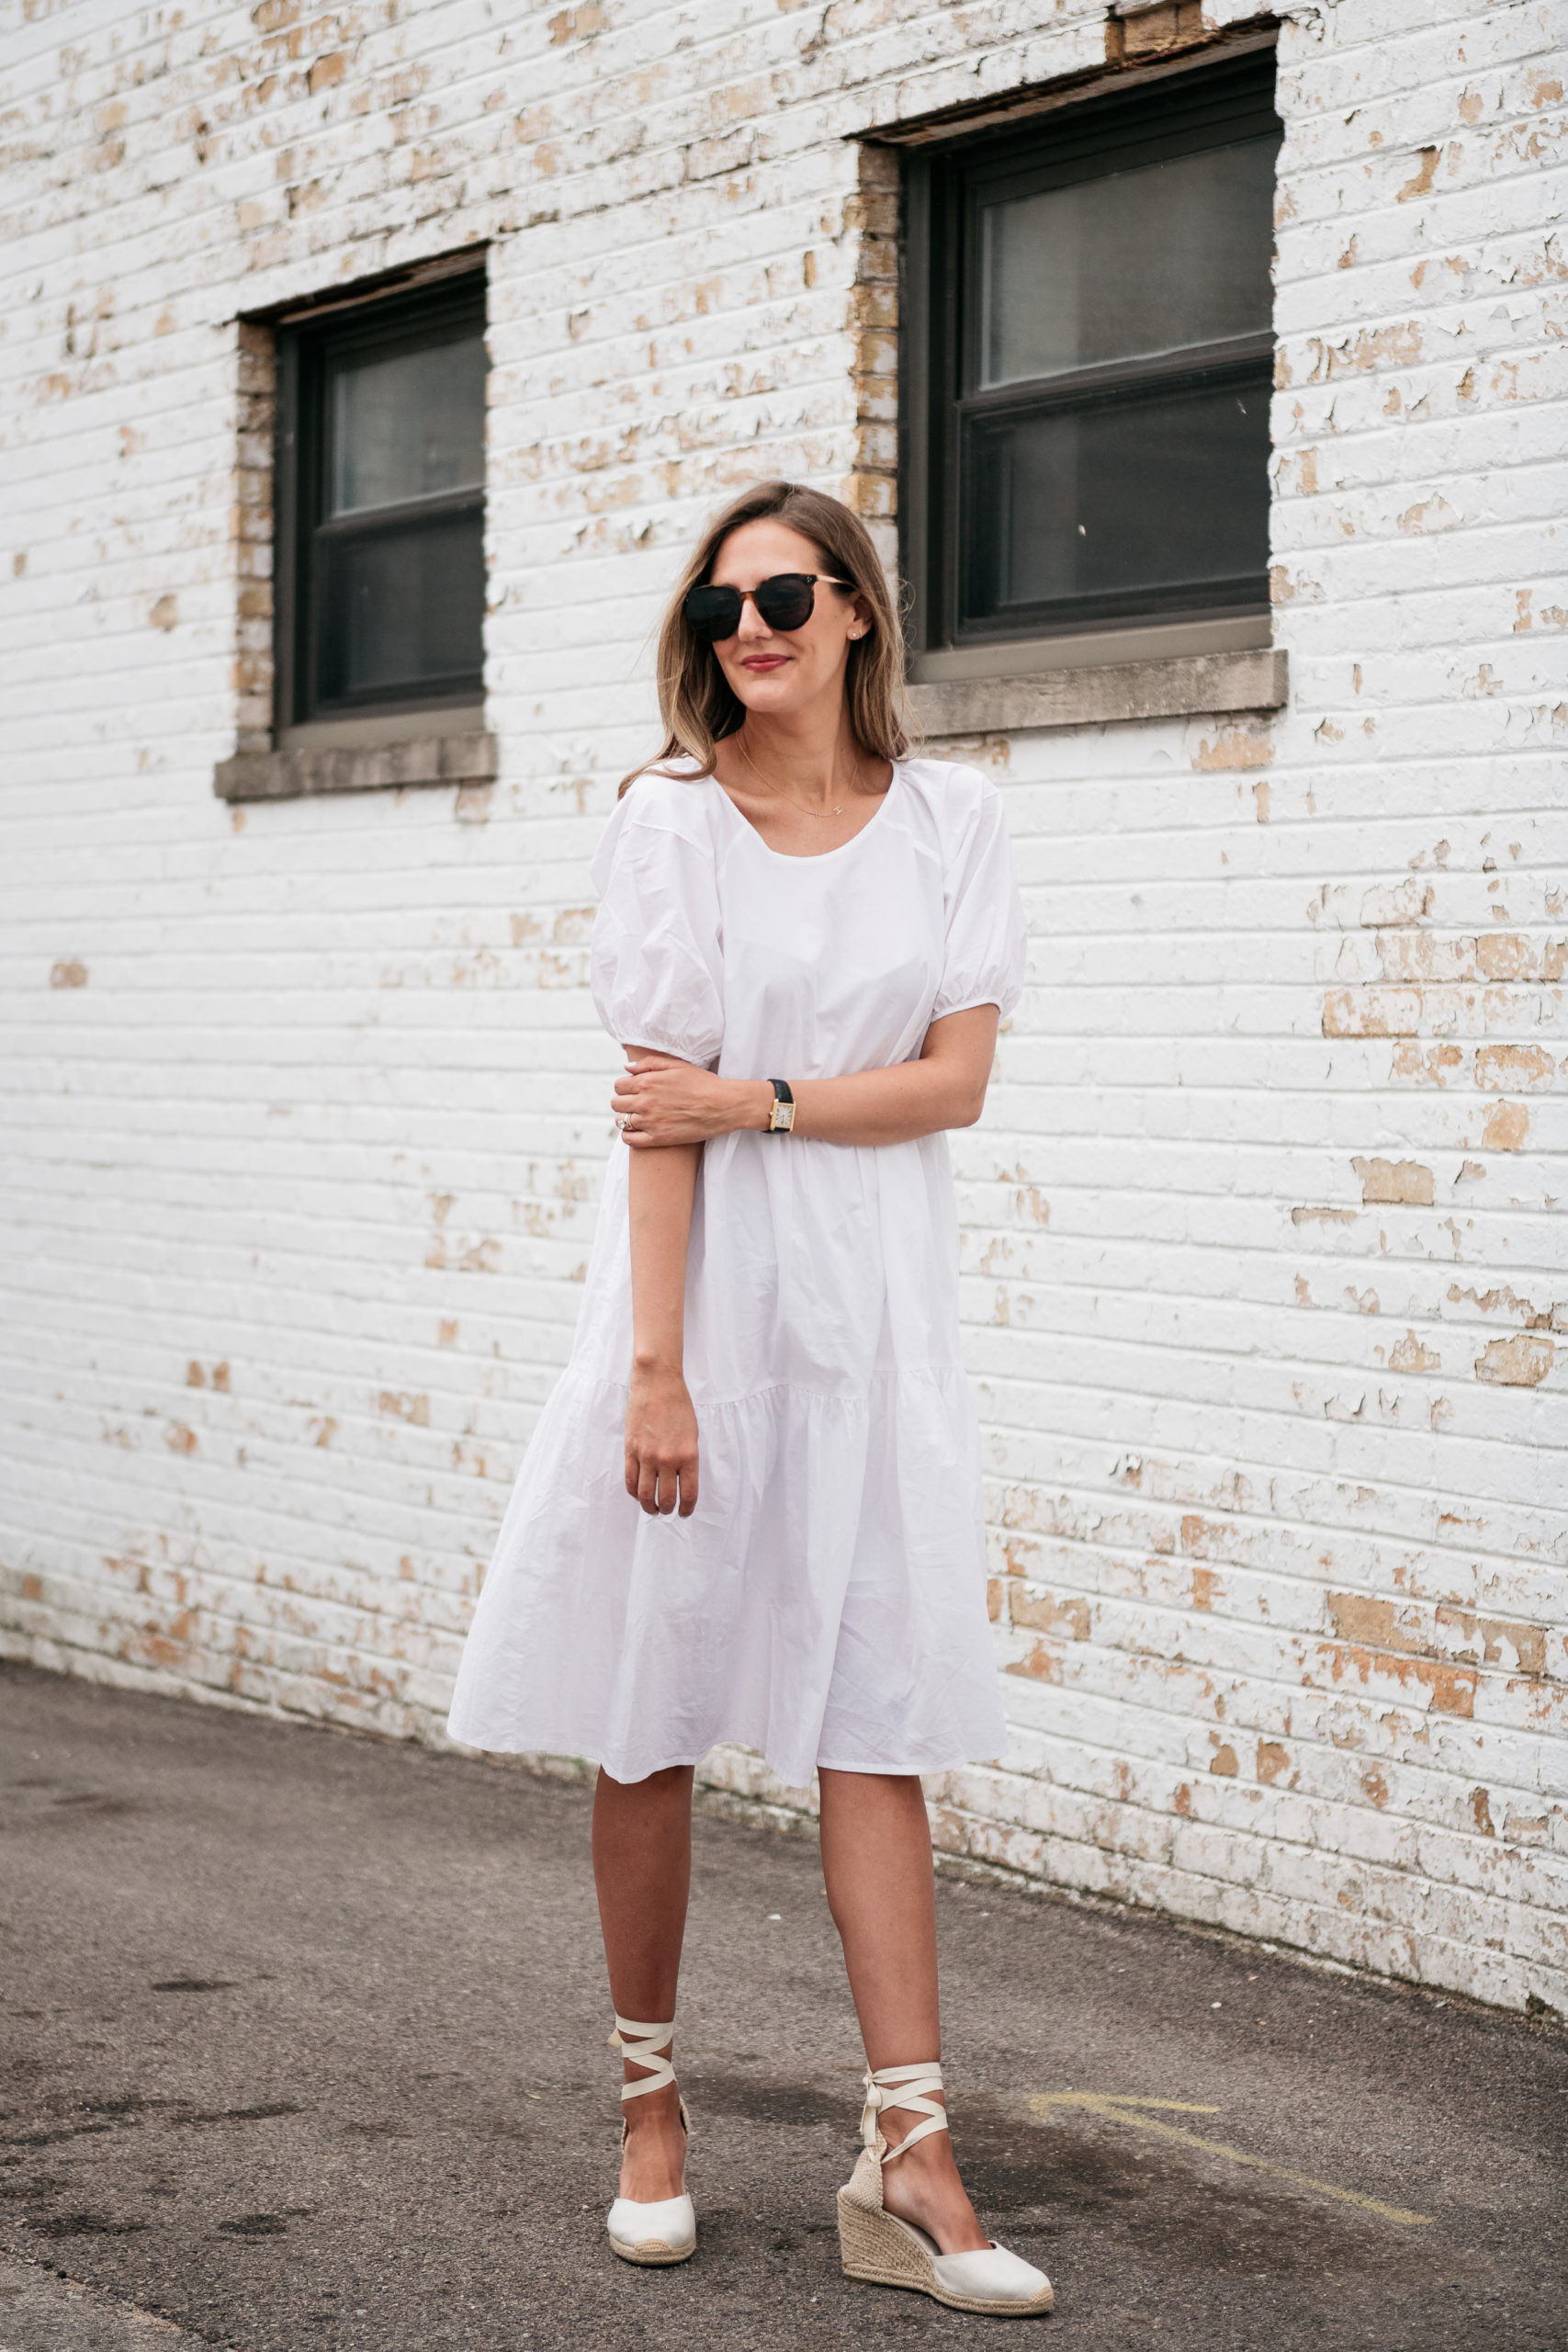 oversized summer dress with espadrilles